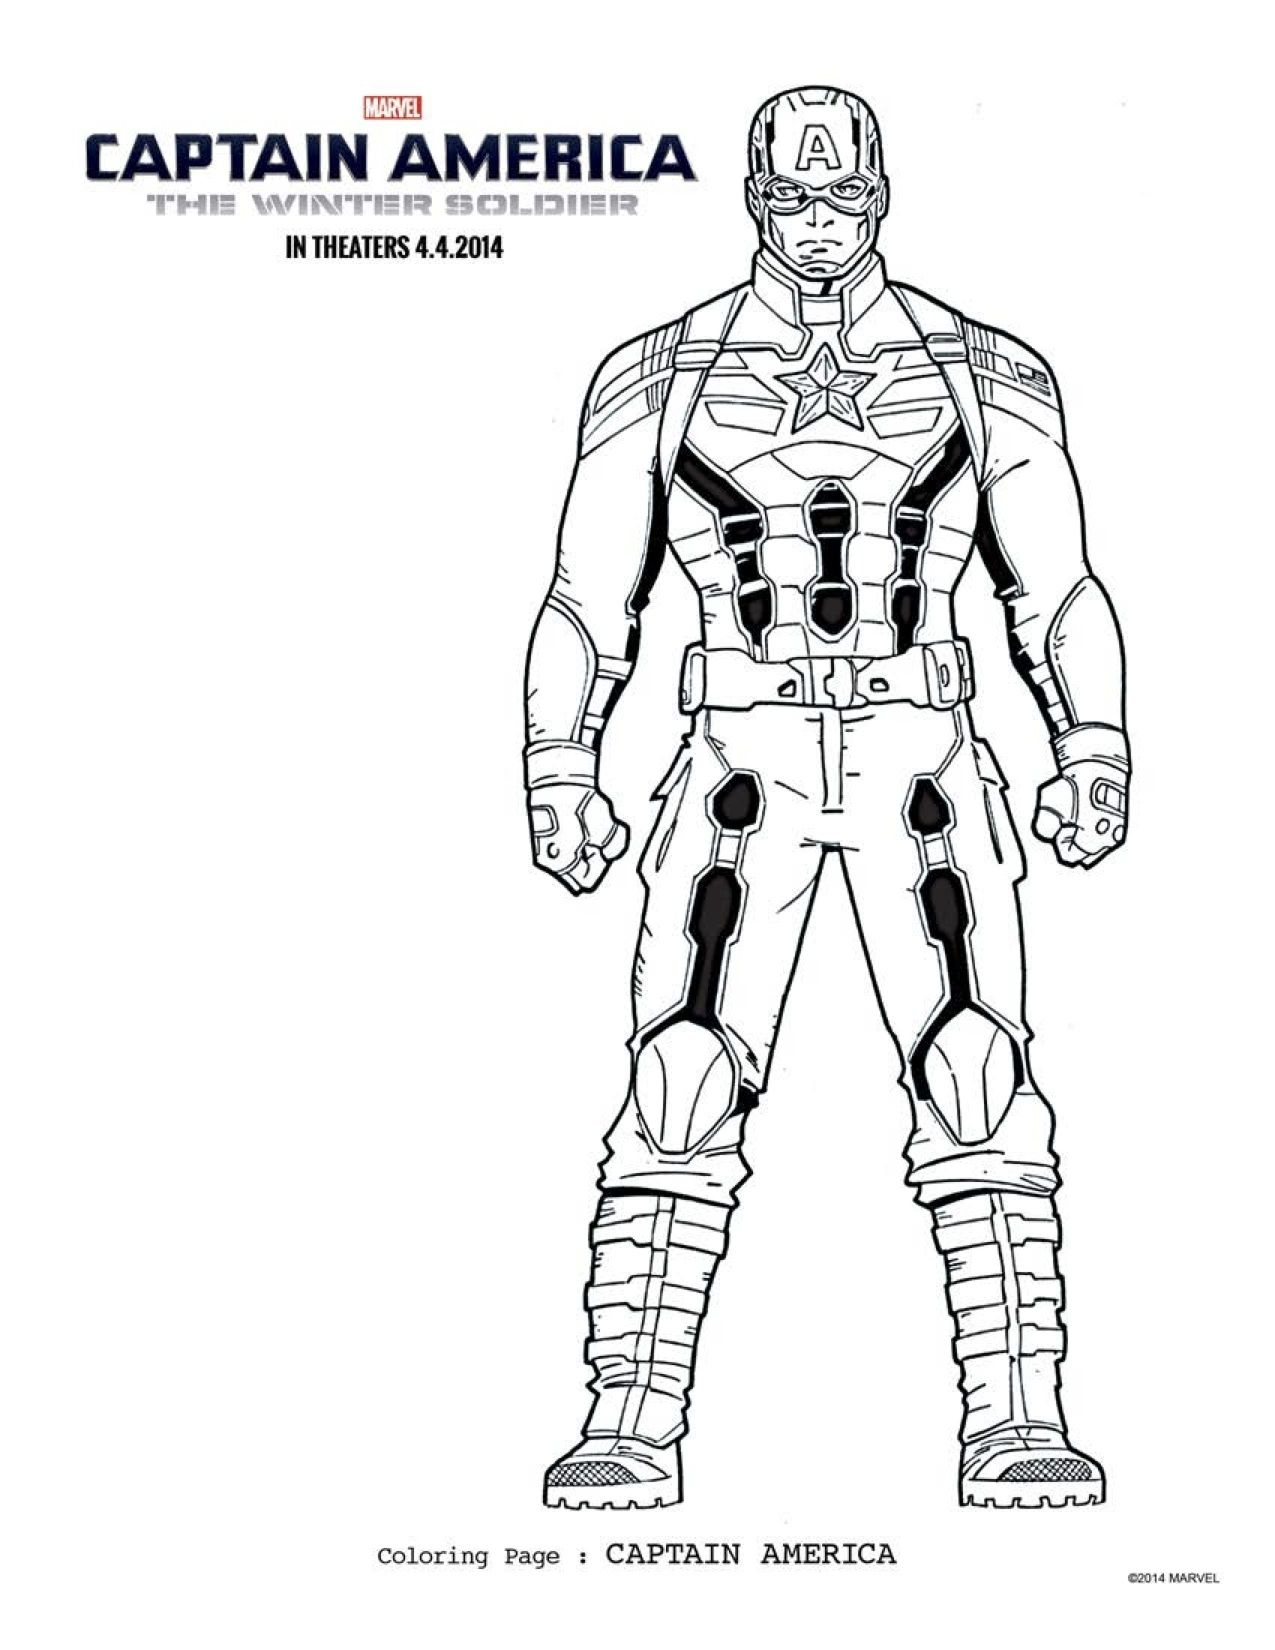 Coloring pages download - Free Captain America 2 Coloring Pages Download Printables Here